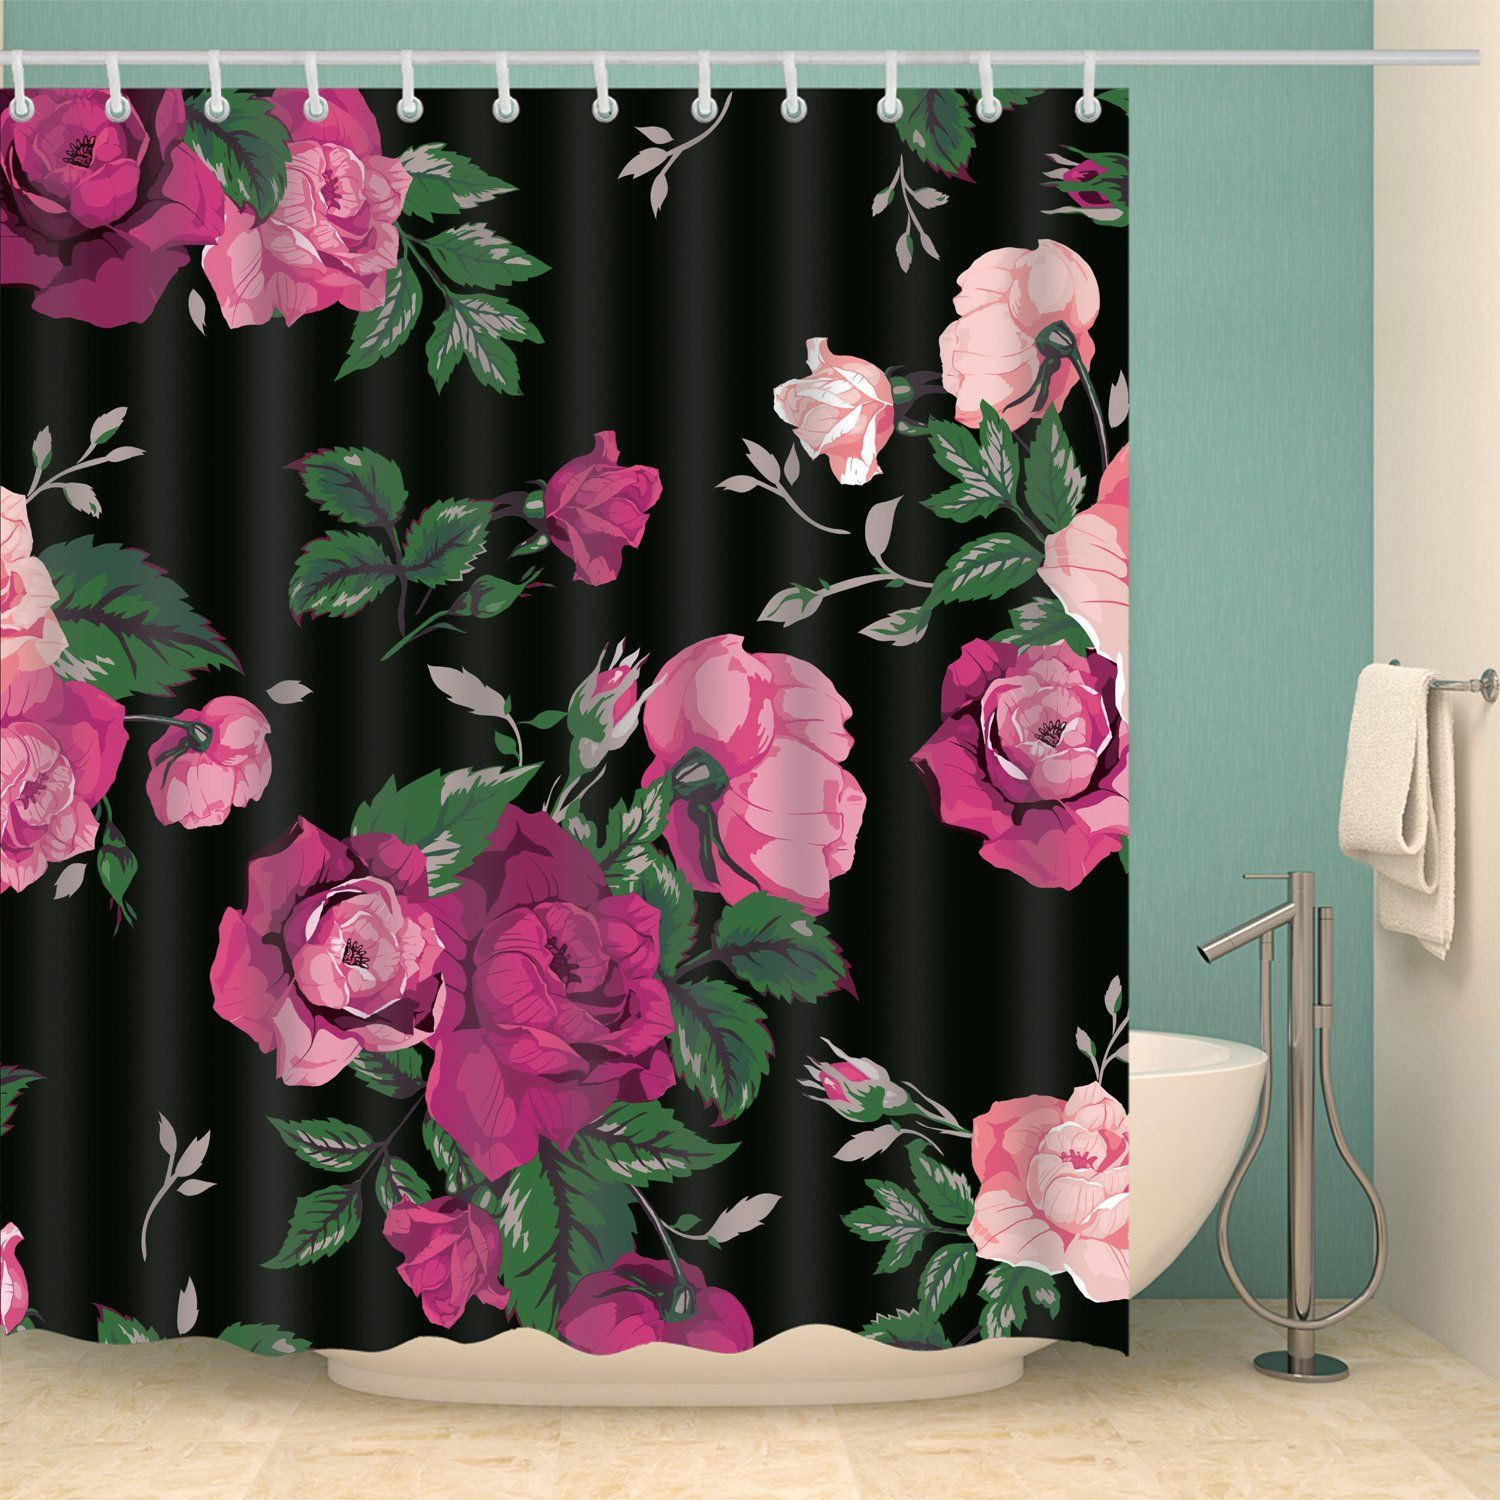 Black Backdrop Pink Rose Floral Shower Curtain Bathroom ...